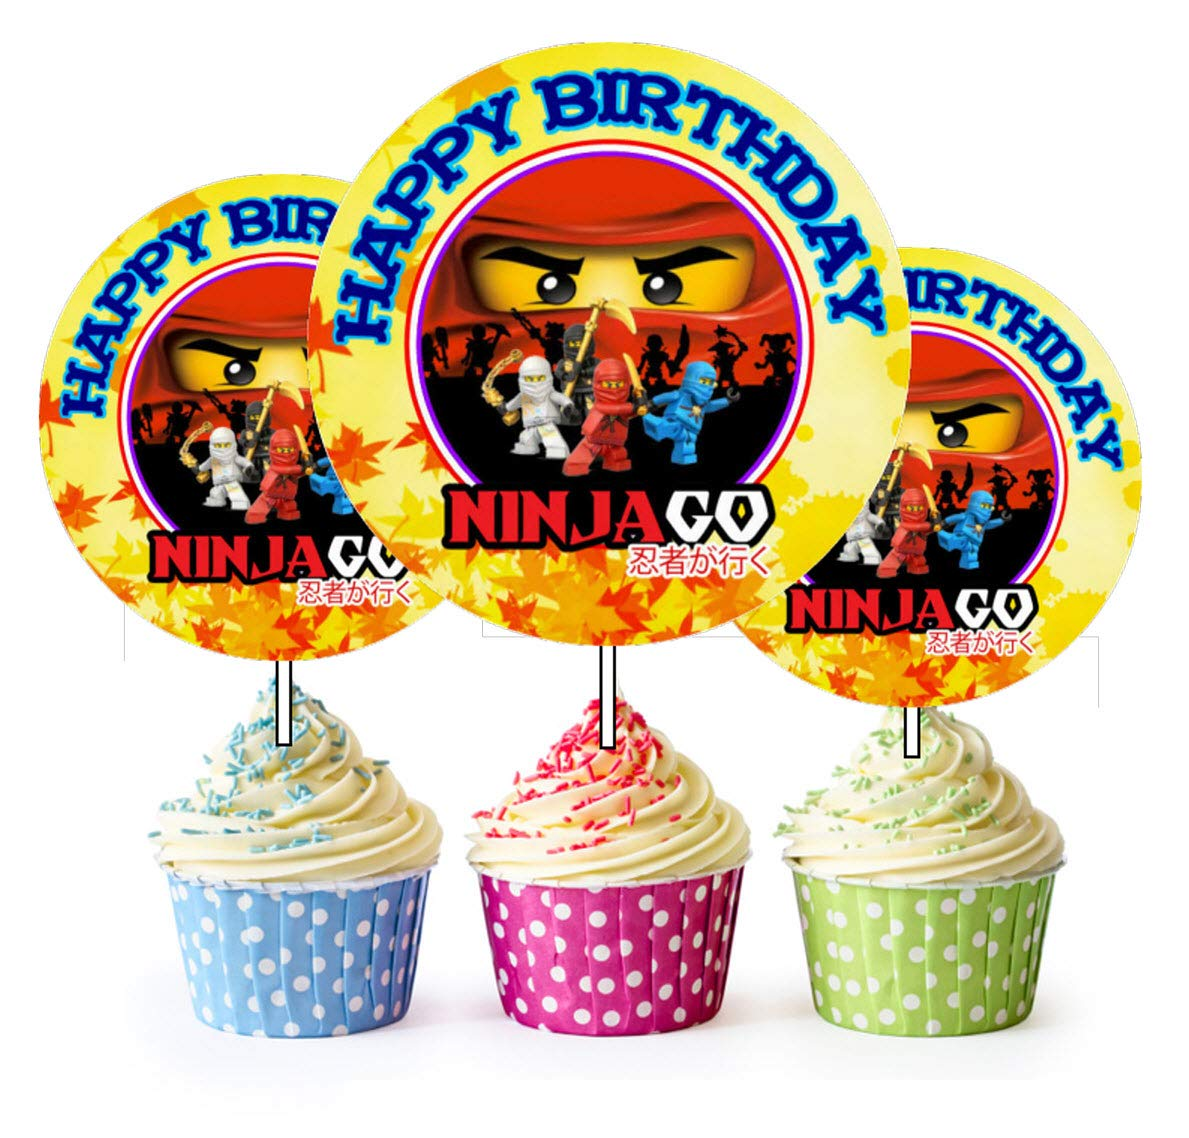 Crafting Mania LLC. 12 Happy Birthday Ninjago Inspired Party Picks, Cupcake Picks, Cupcake Toppers #1